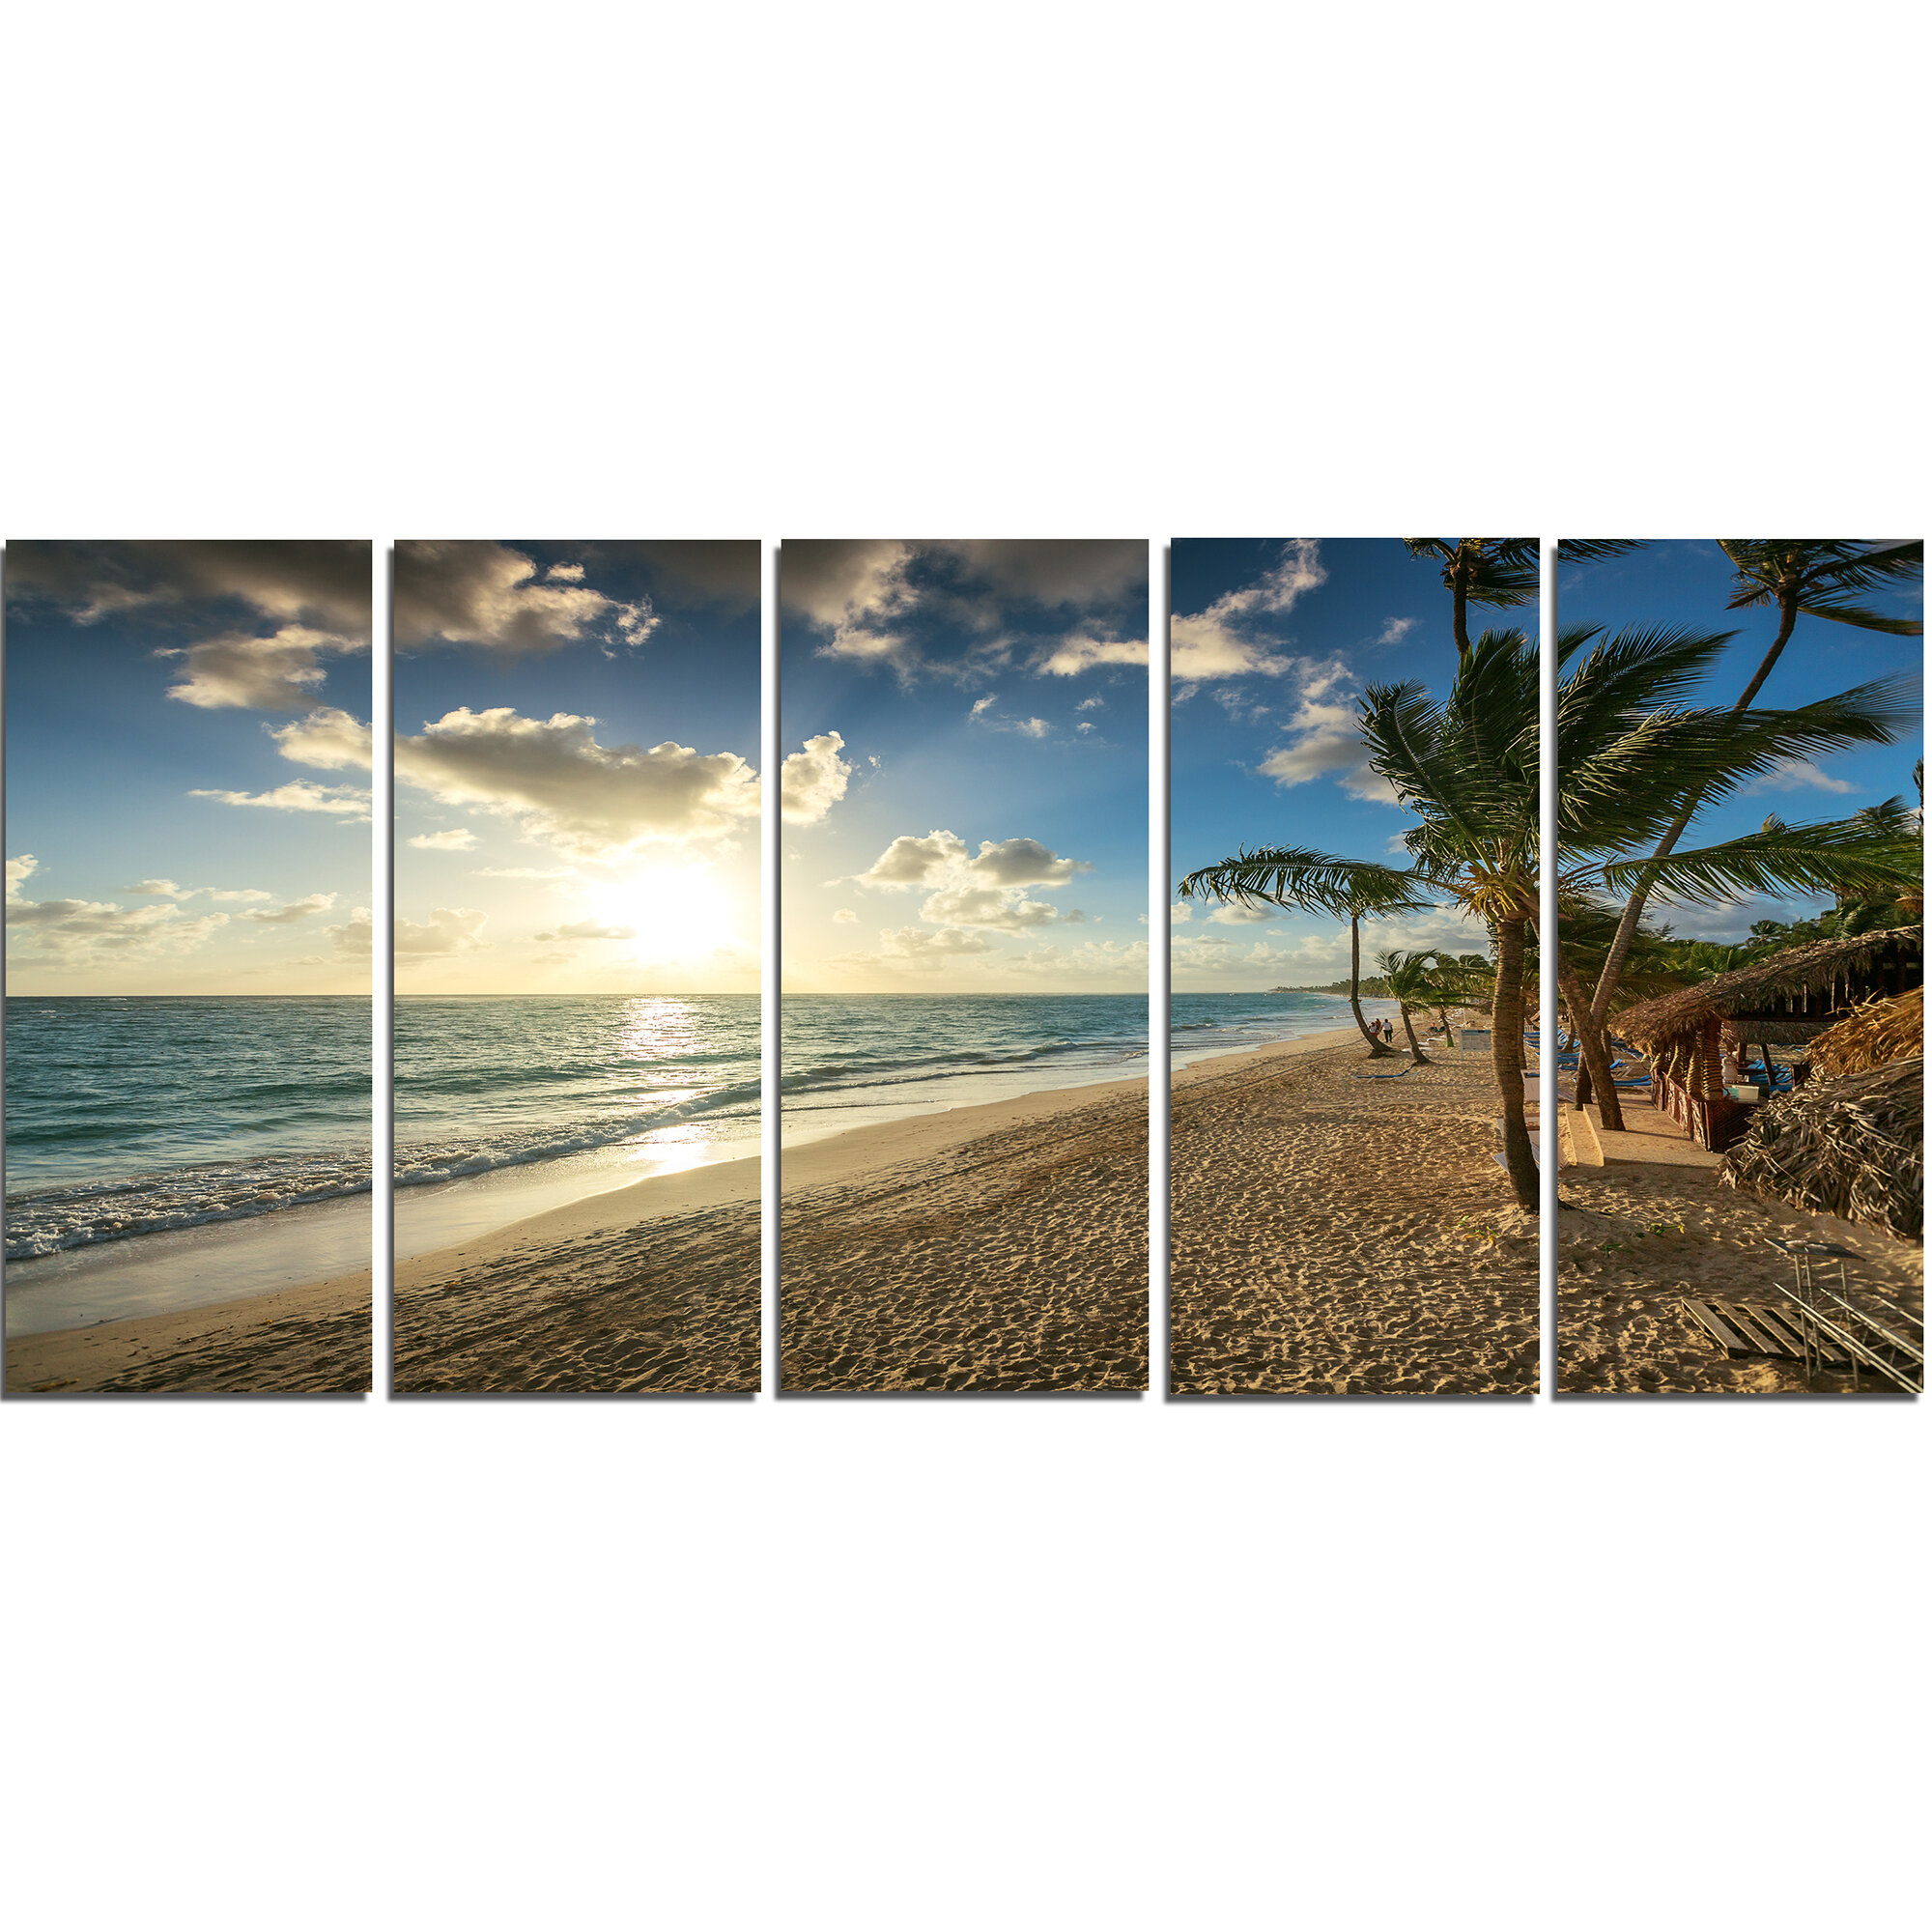 Designart Beautiful Caribbean Vacation Beach 5 Piece Photographic Print On Wrapped Canvas Set Wayfair